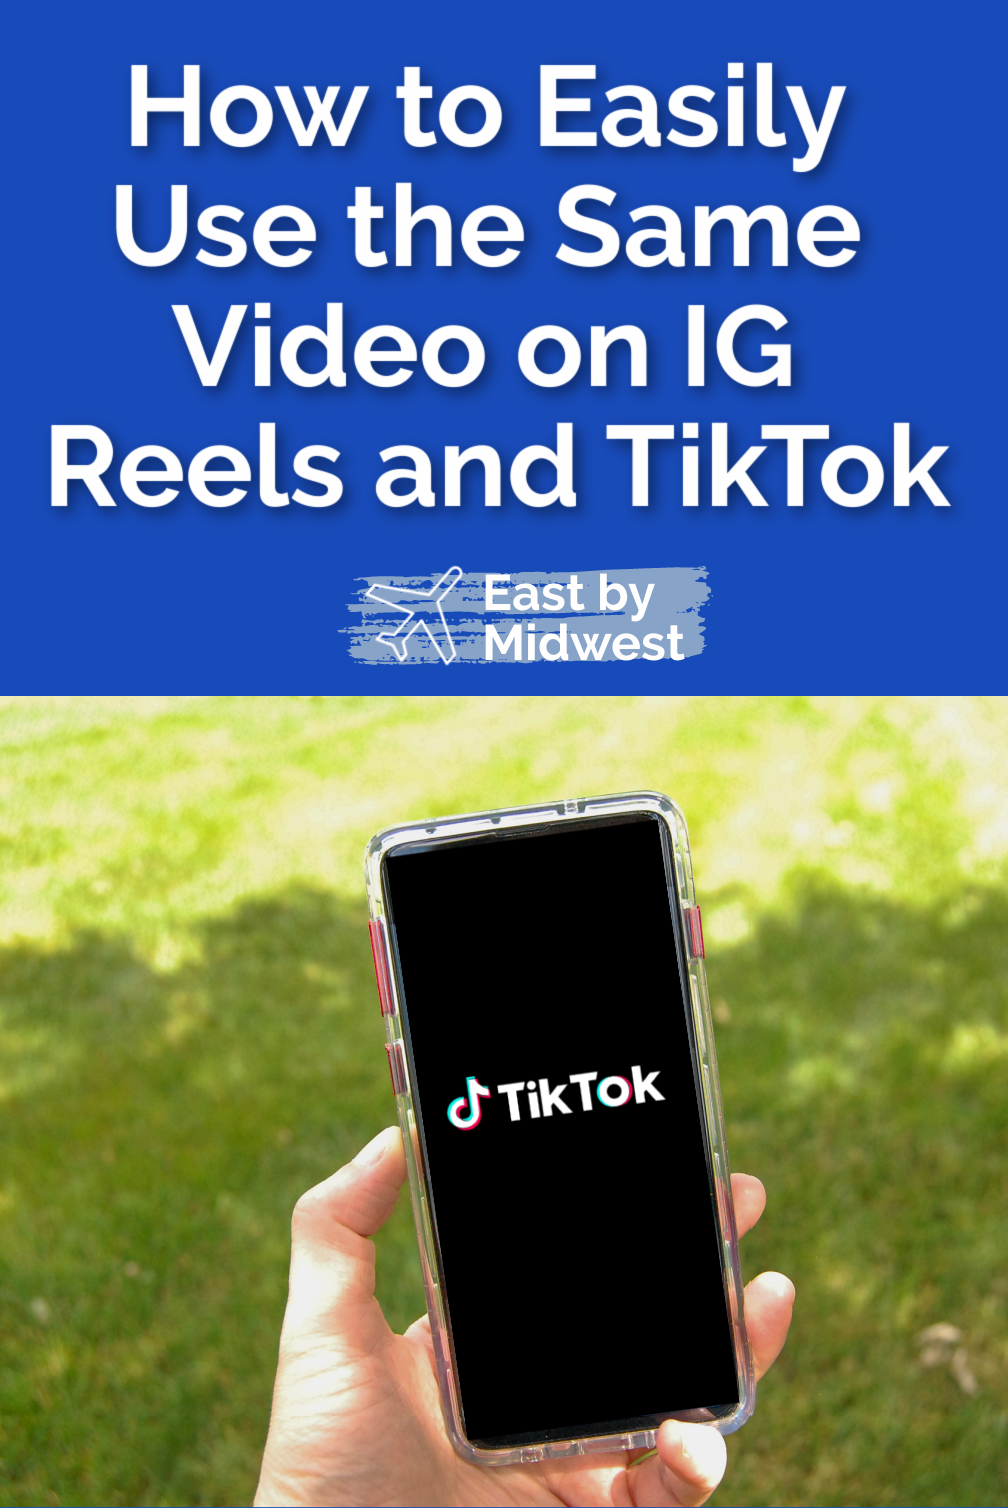 How to Easily Use the Same Video on IG Reels and TikTok